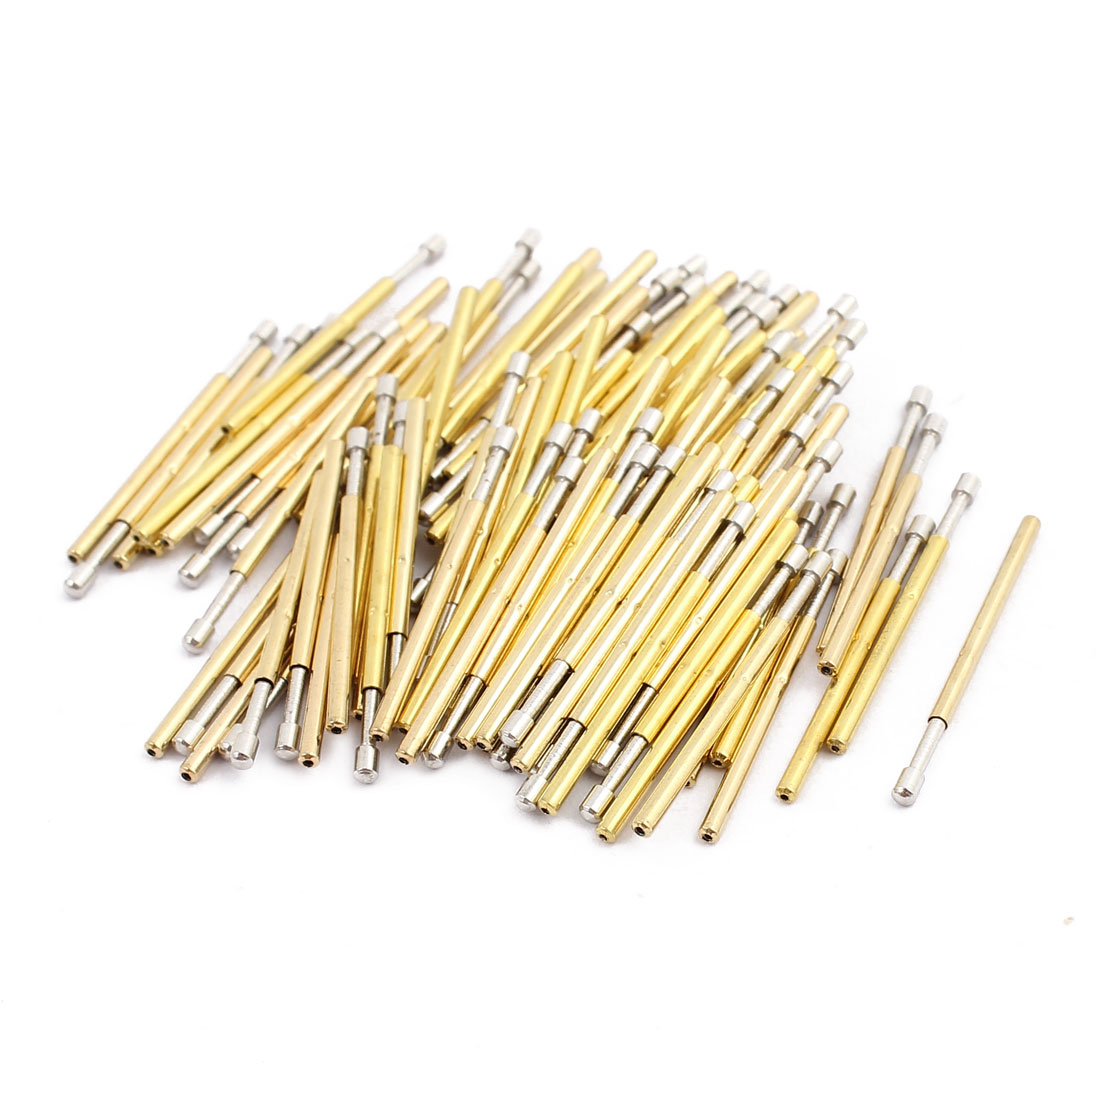 100pcs P160-D2 1.36mm Dia 24.5mm Length Metal Spring Pressure Test Probe Needle